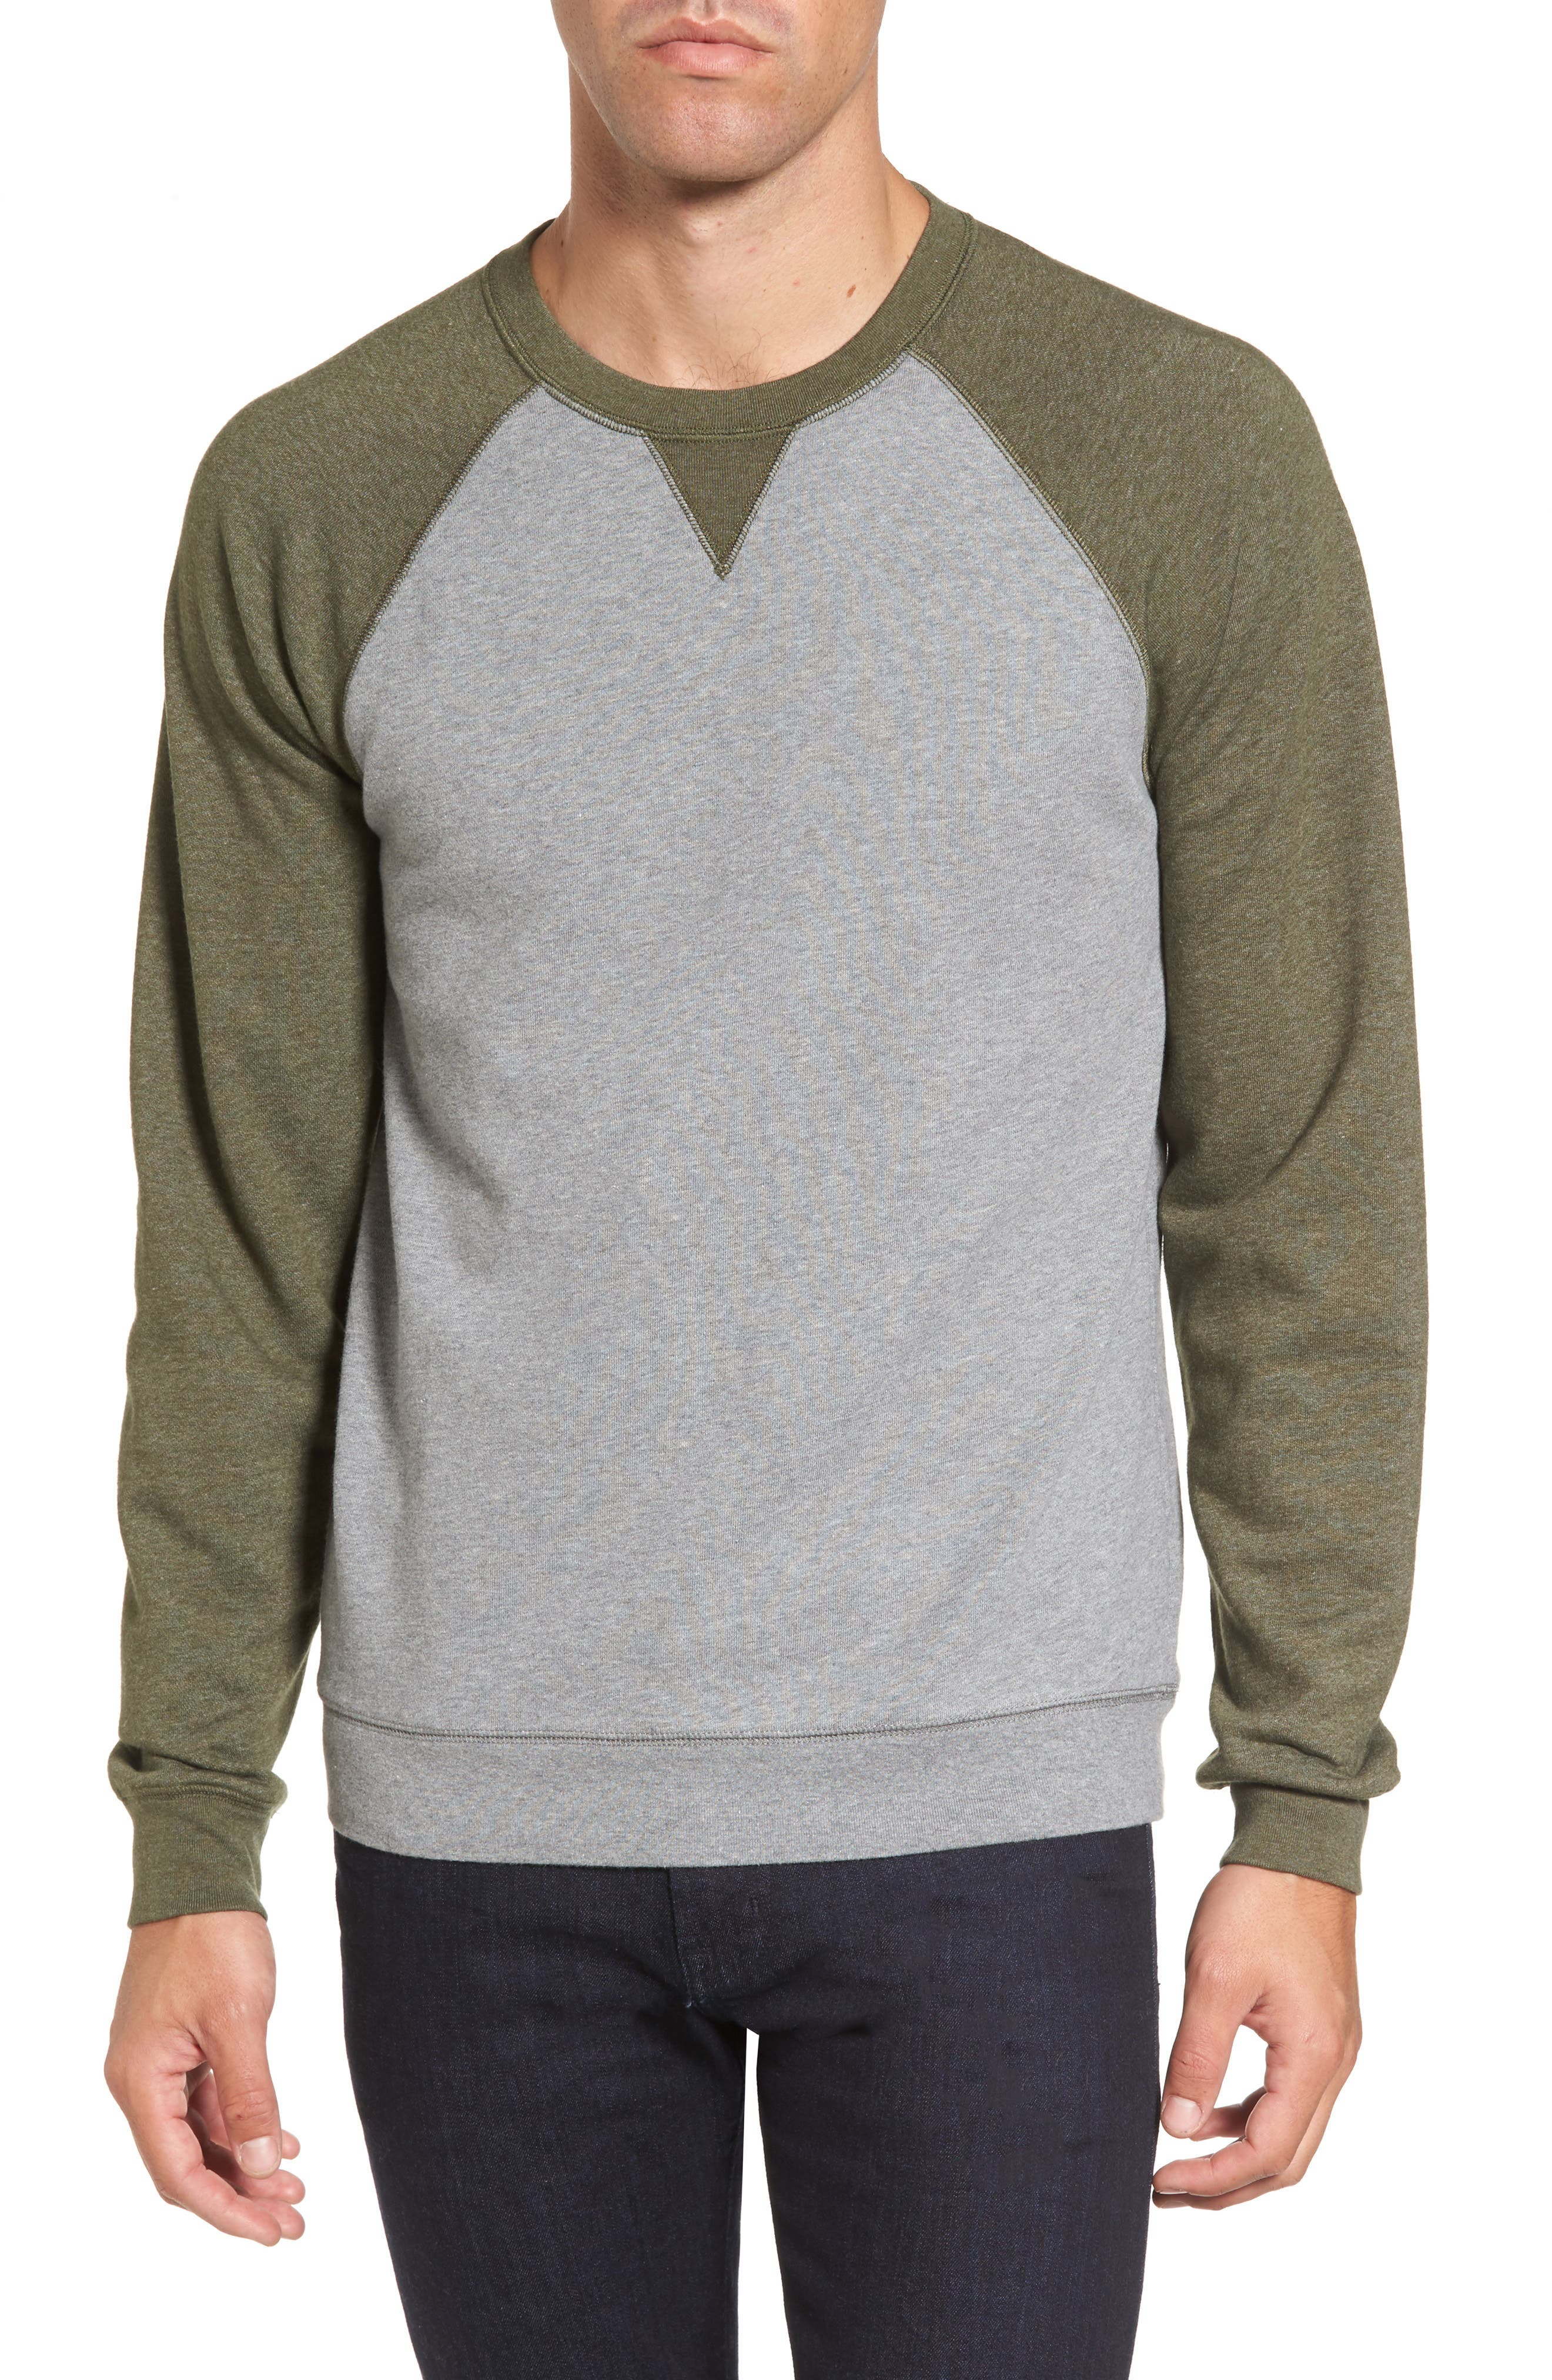 Colorblock French Terry Sweatshirt,                             Main thumbnail 1, color,                             032